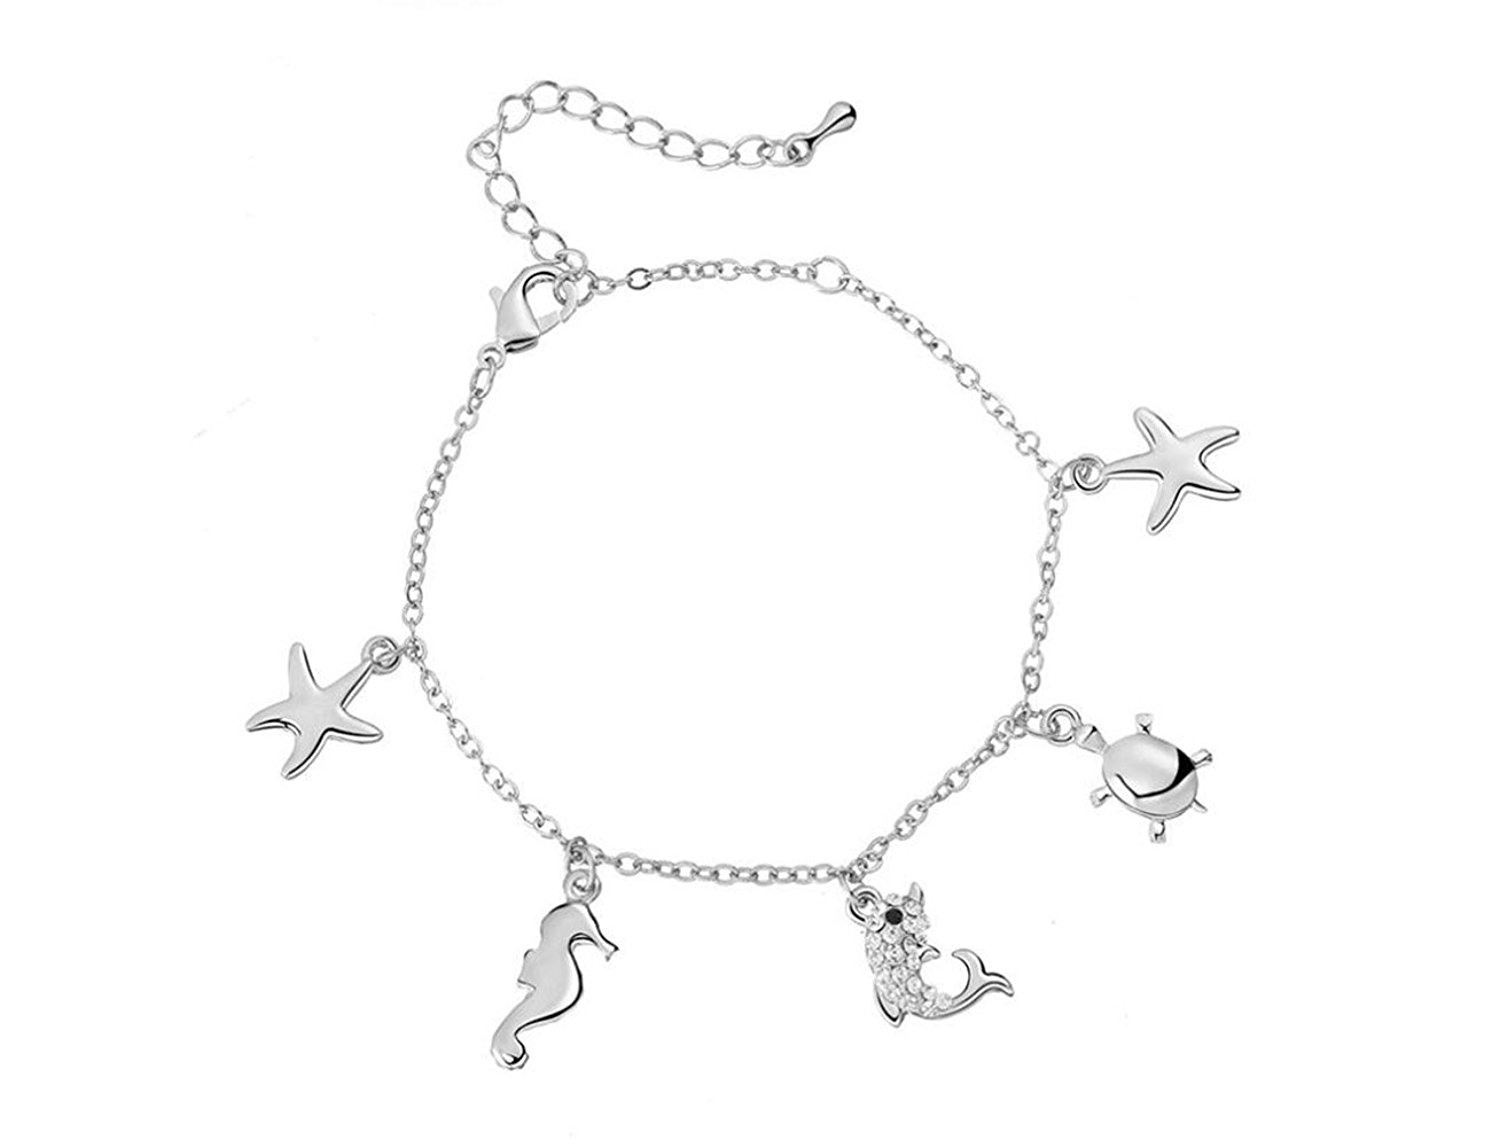 PORPI-JOJO Sea Animals Anklets for Women Anklet Bracelet Barefoot Sandal Beach Foot Fashion Jewelry for Mother's Day